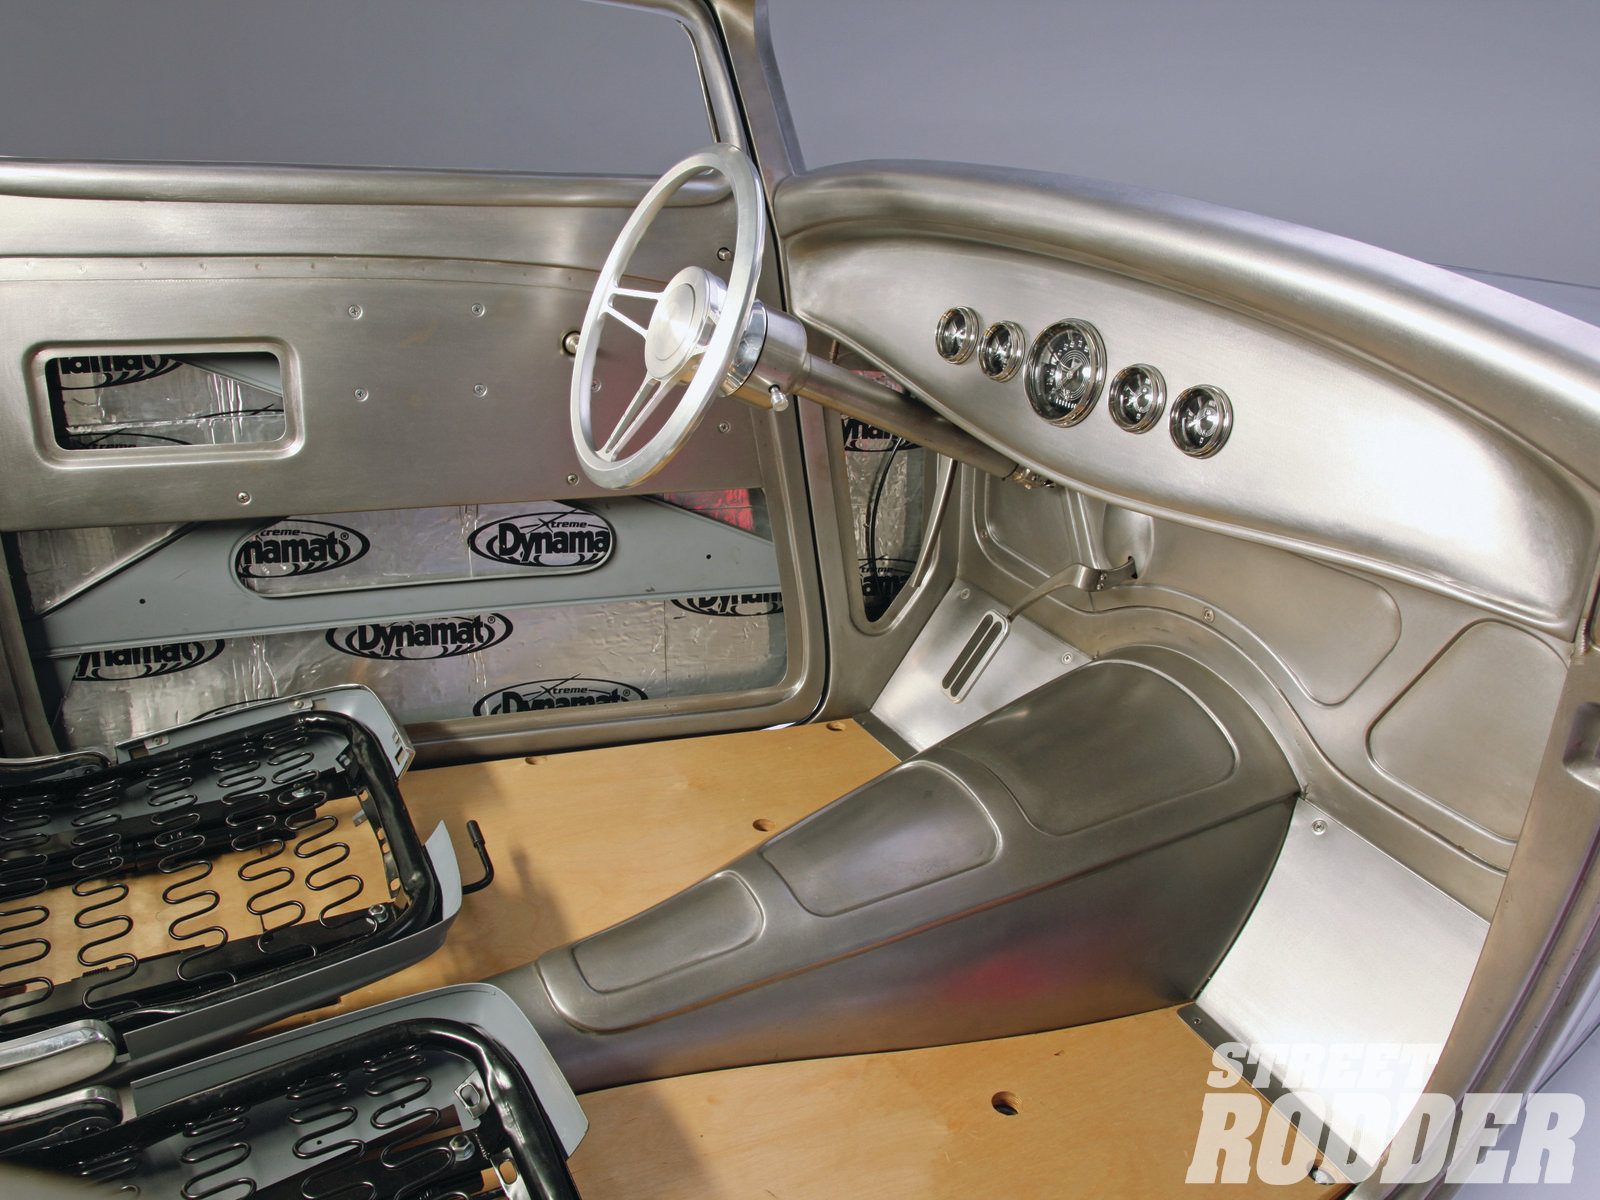 22| The steering column came from ididit, and the gauges are through Classic Instruments.